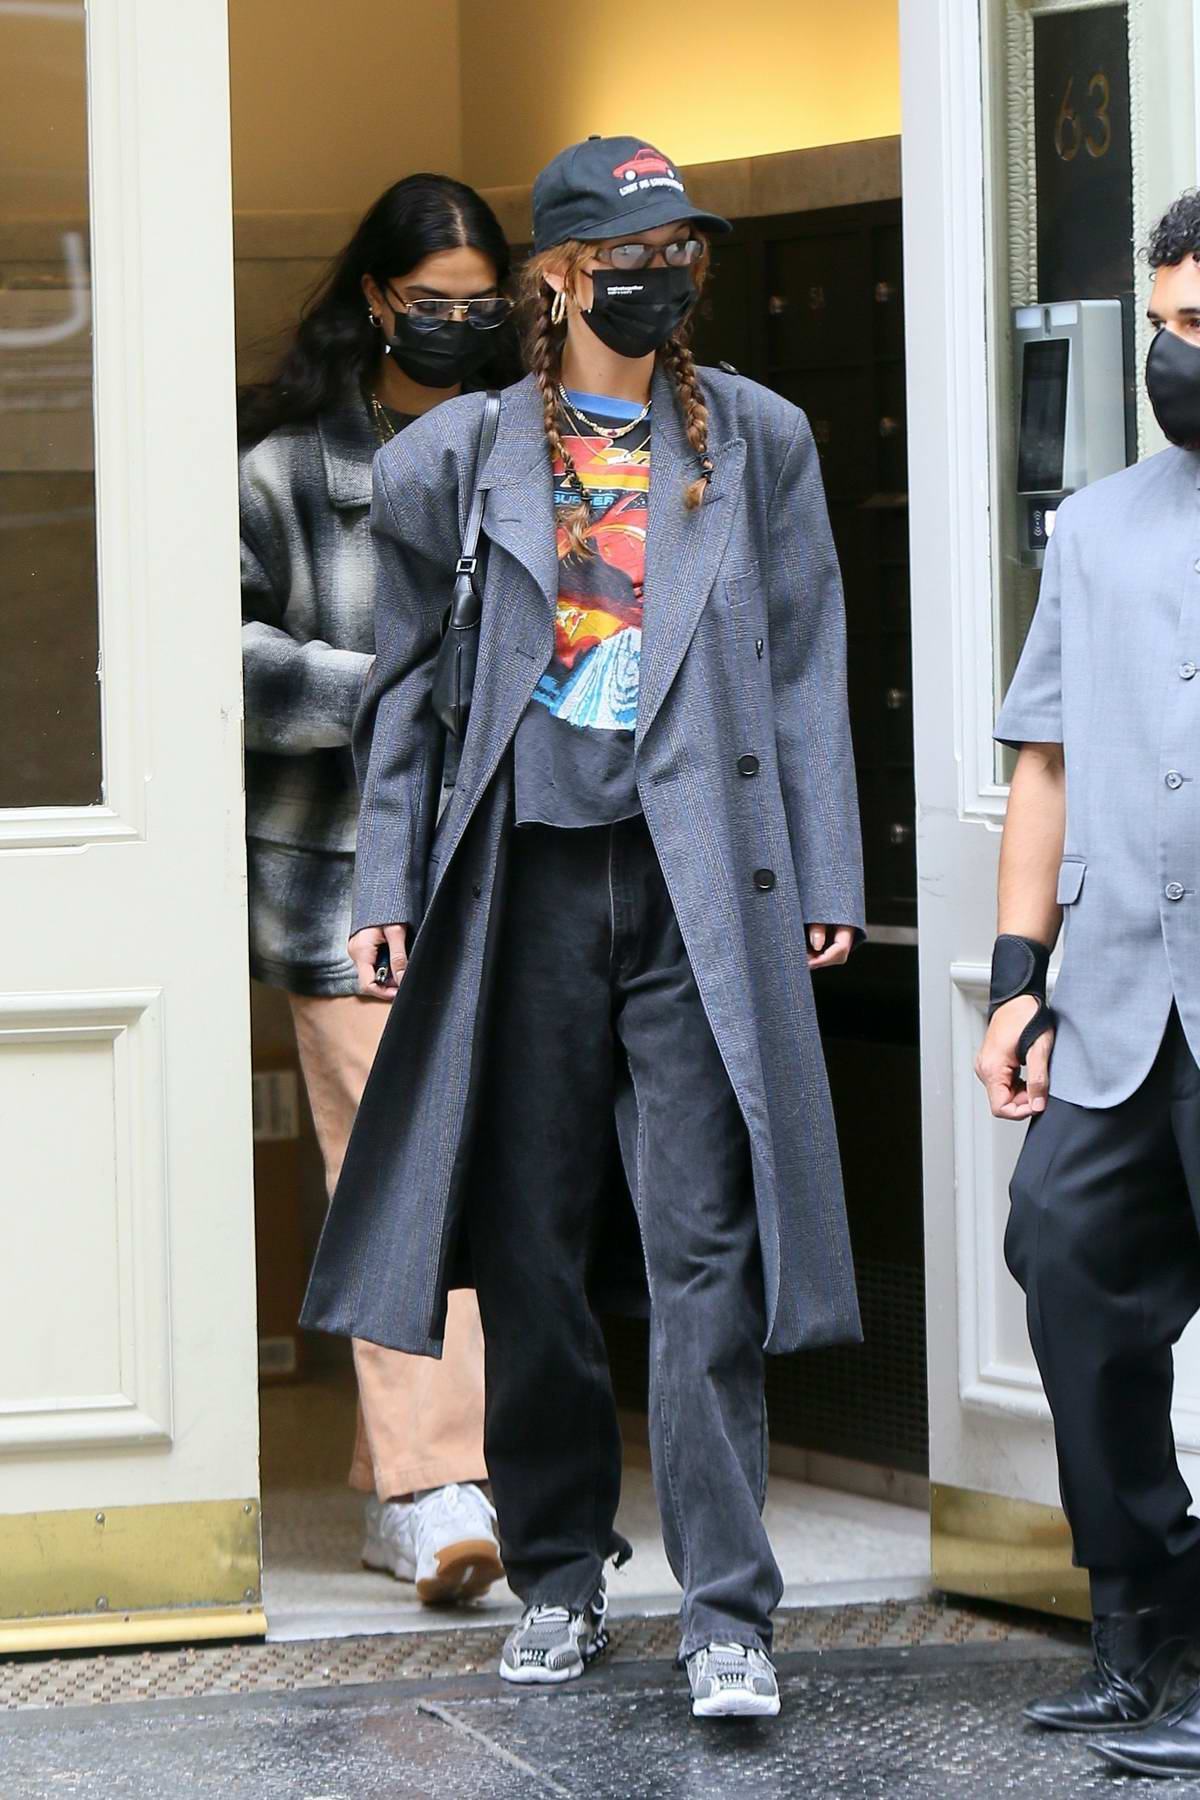 Bella Hadid seen wearing a trench coat over a graphic top while heading out to a spa in New York City